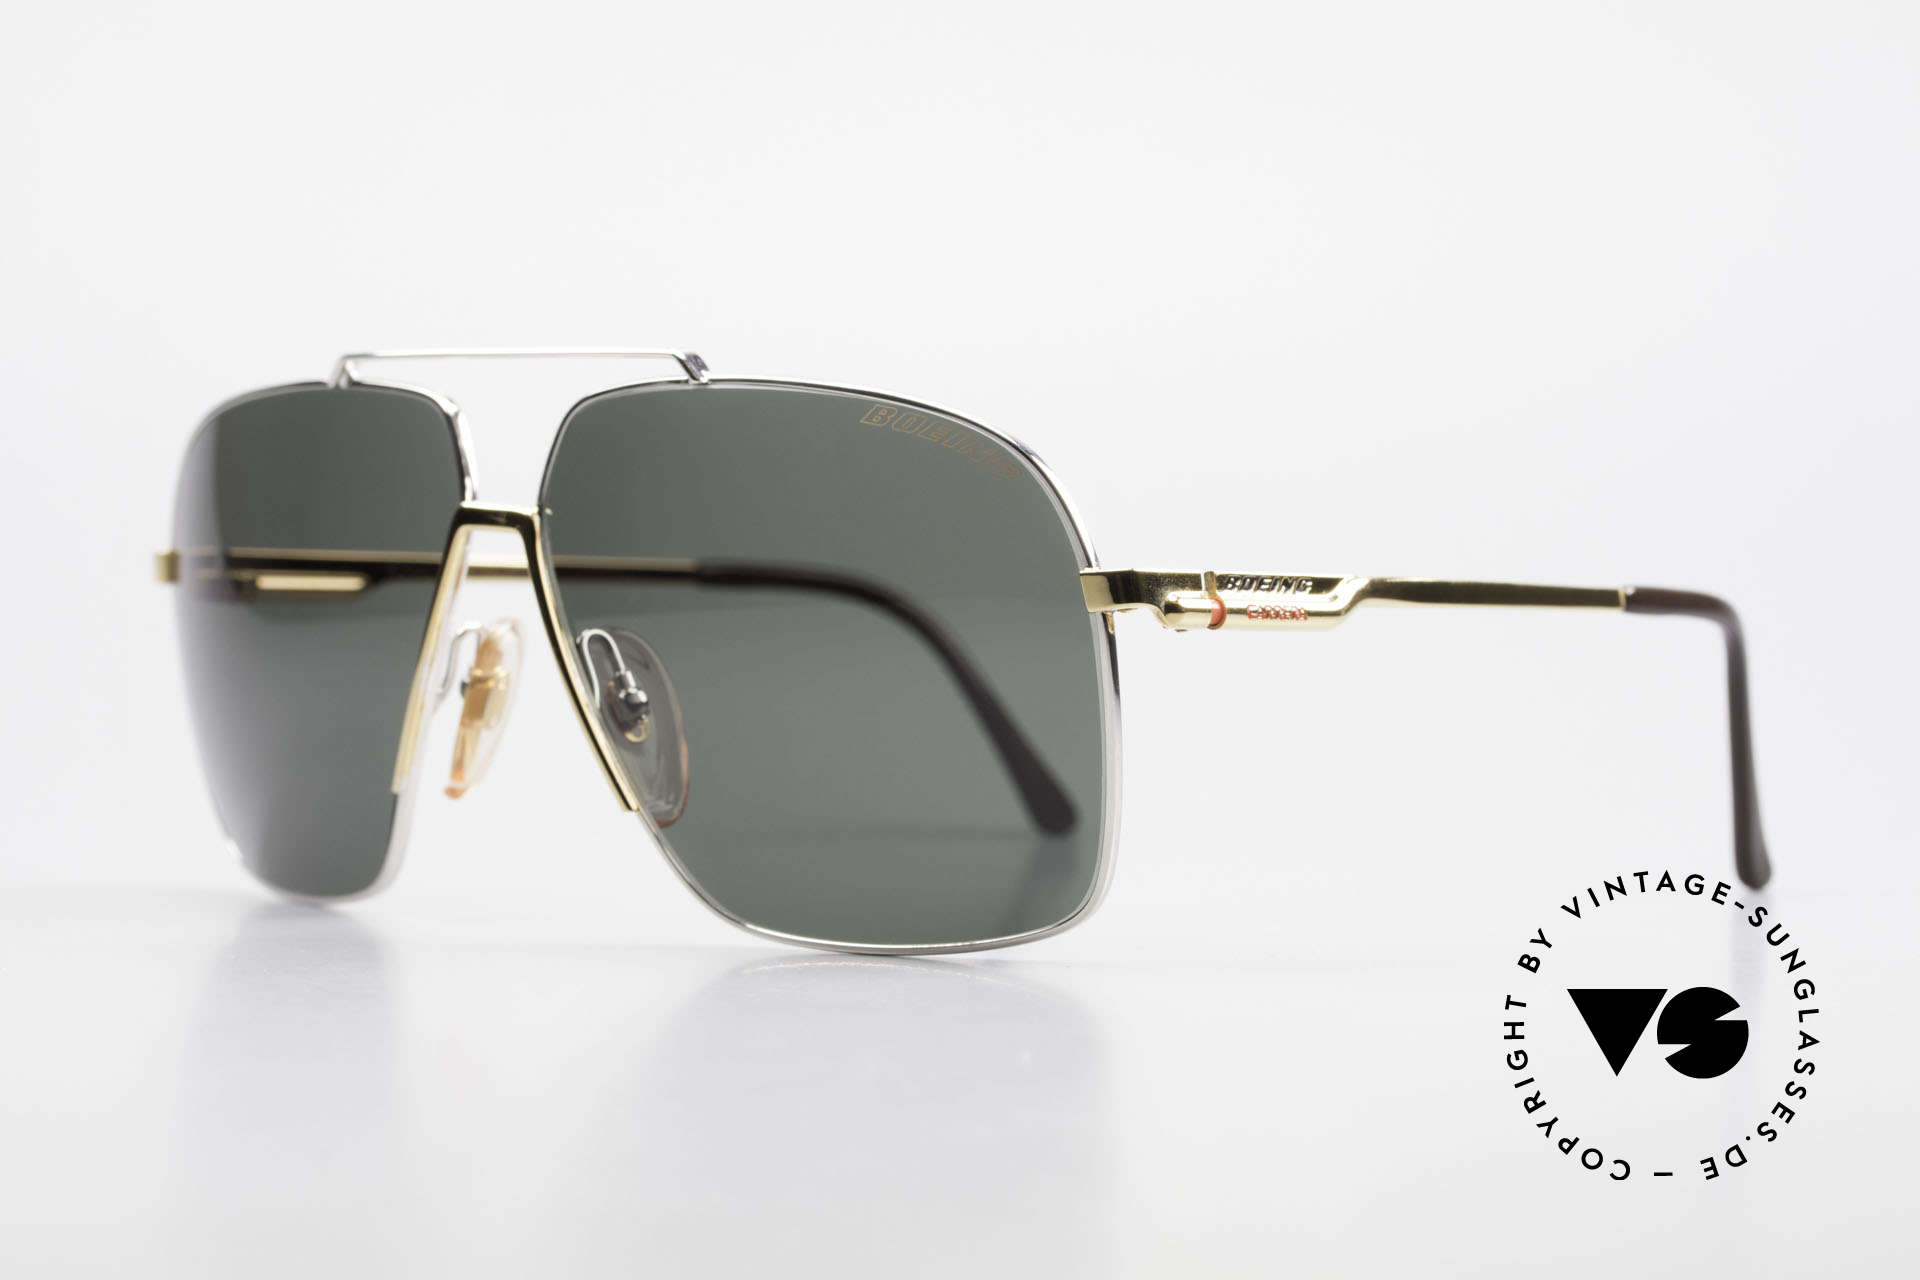 Boeing 5704 Original Old 80's Pilots Shades, integrated shock-absorbers and self-adjusting pads, Made for Men